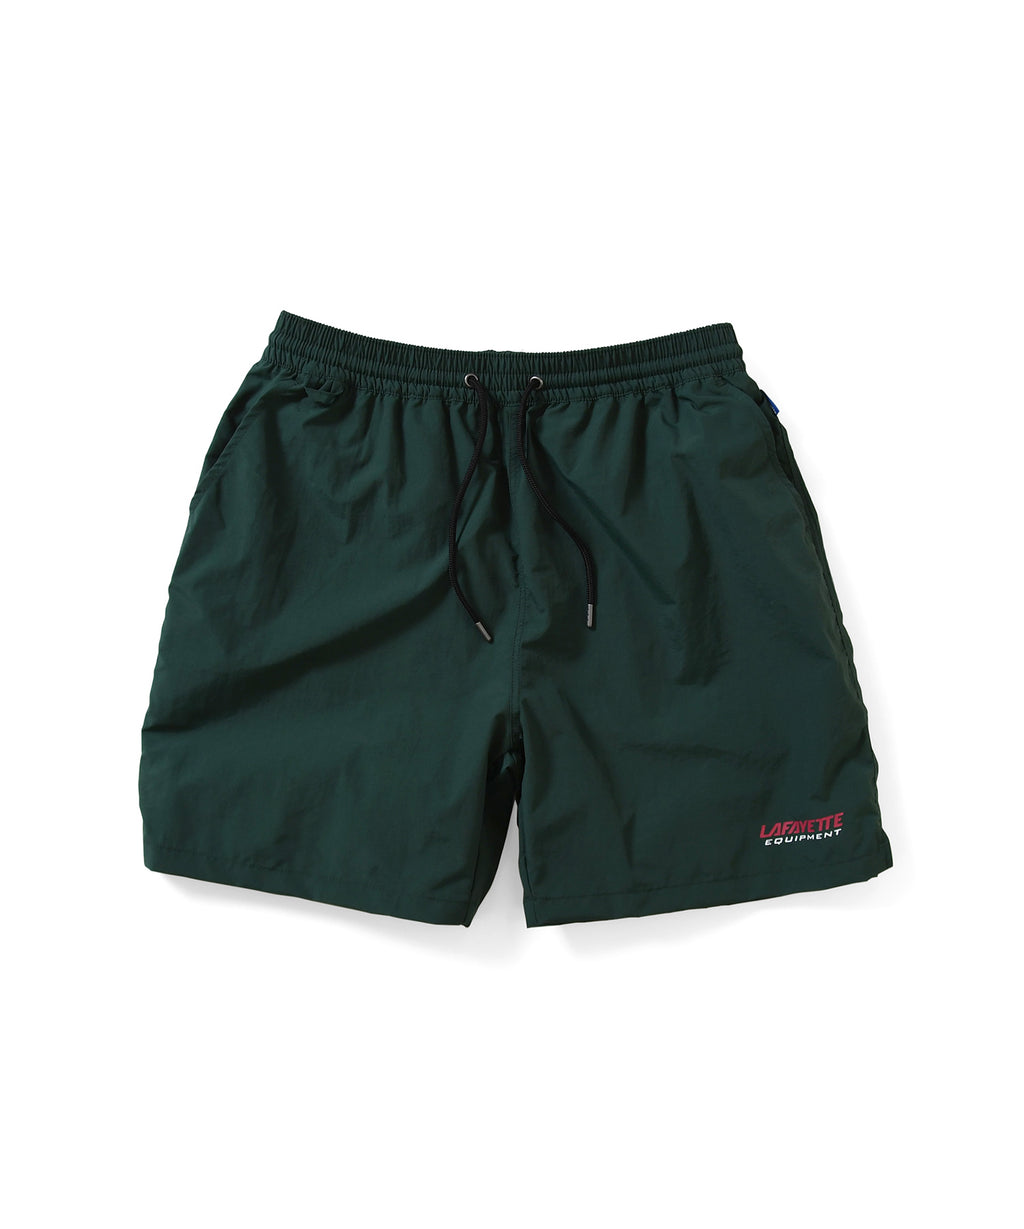 Lafayette EQUIPMENT LOGO NYLON SHORTS LS201308 GREEN